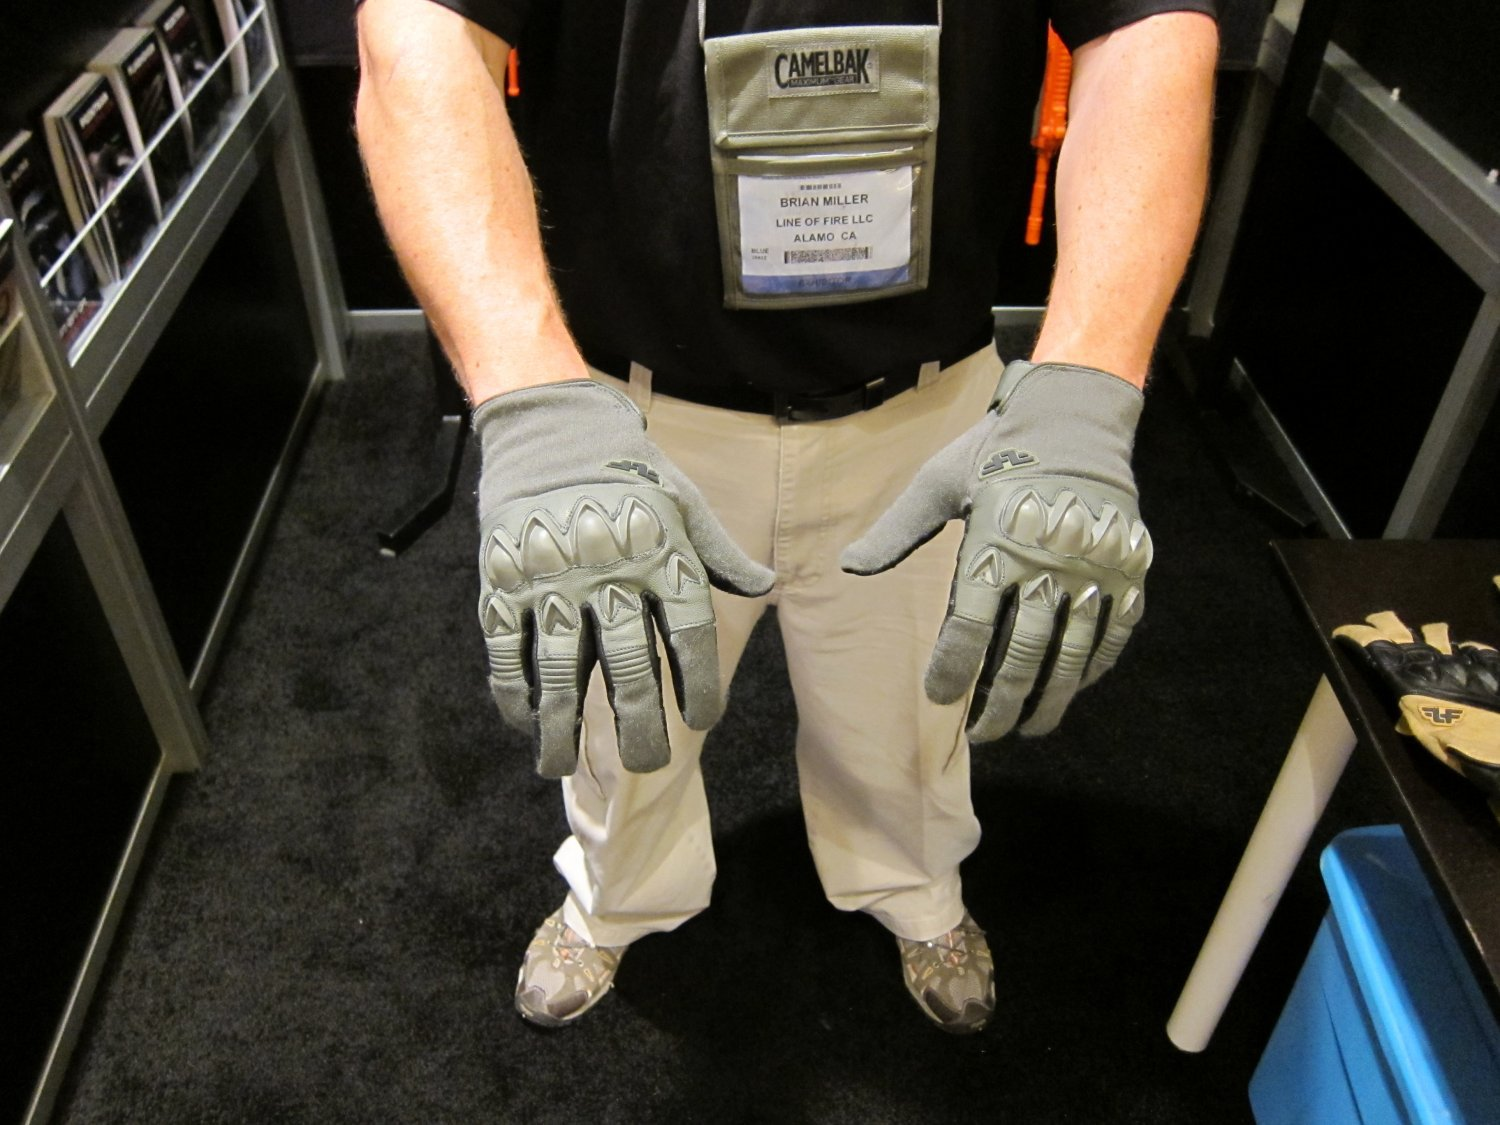 SHOT Show 2010 Line Of Fire LOF TEGS Tactical Gloves 6 Line of Fire (LOF) Stryker, Flashover and Pointman Tactical Gloves with Revolutionary TEGS (Technology Enhanced Grip System) Grip Enhancing Technology: Assault Gloves Go Gecko!